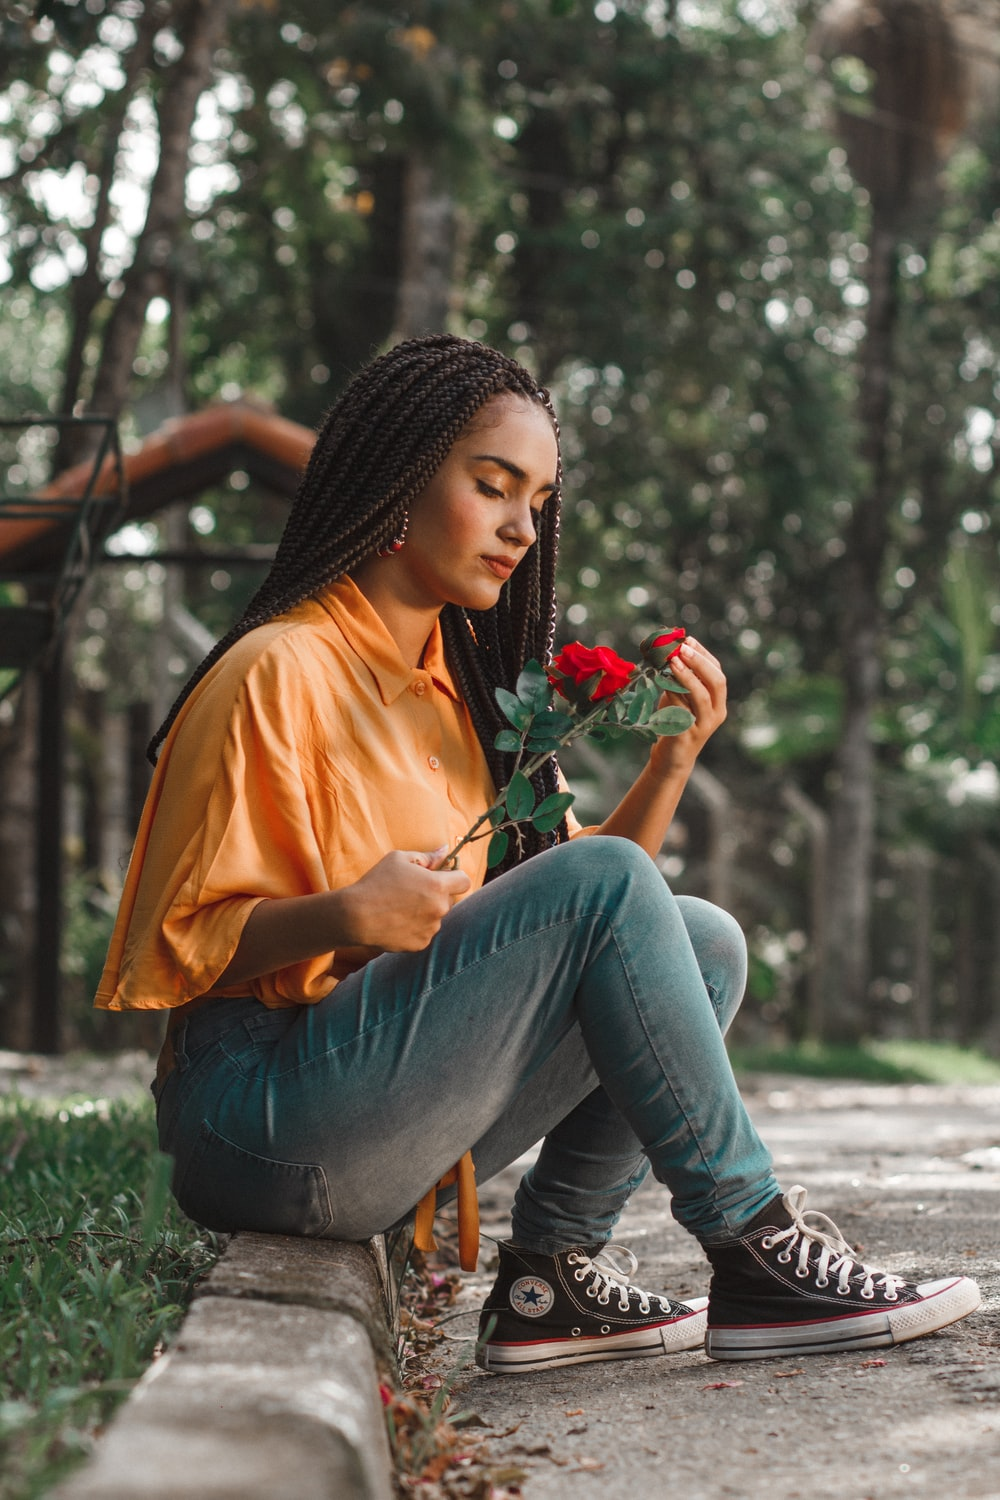 woman holding flower while sitting on ground during daytime